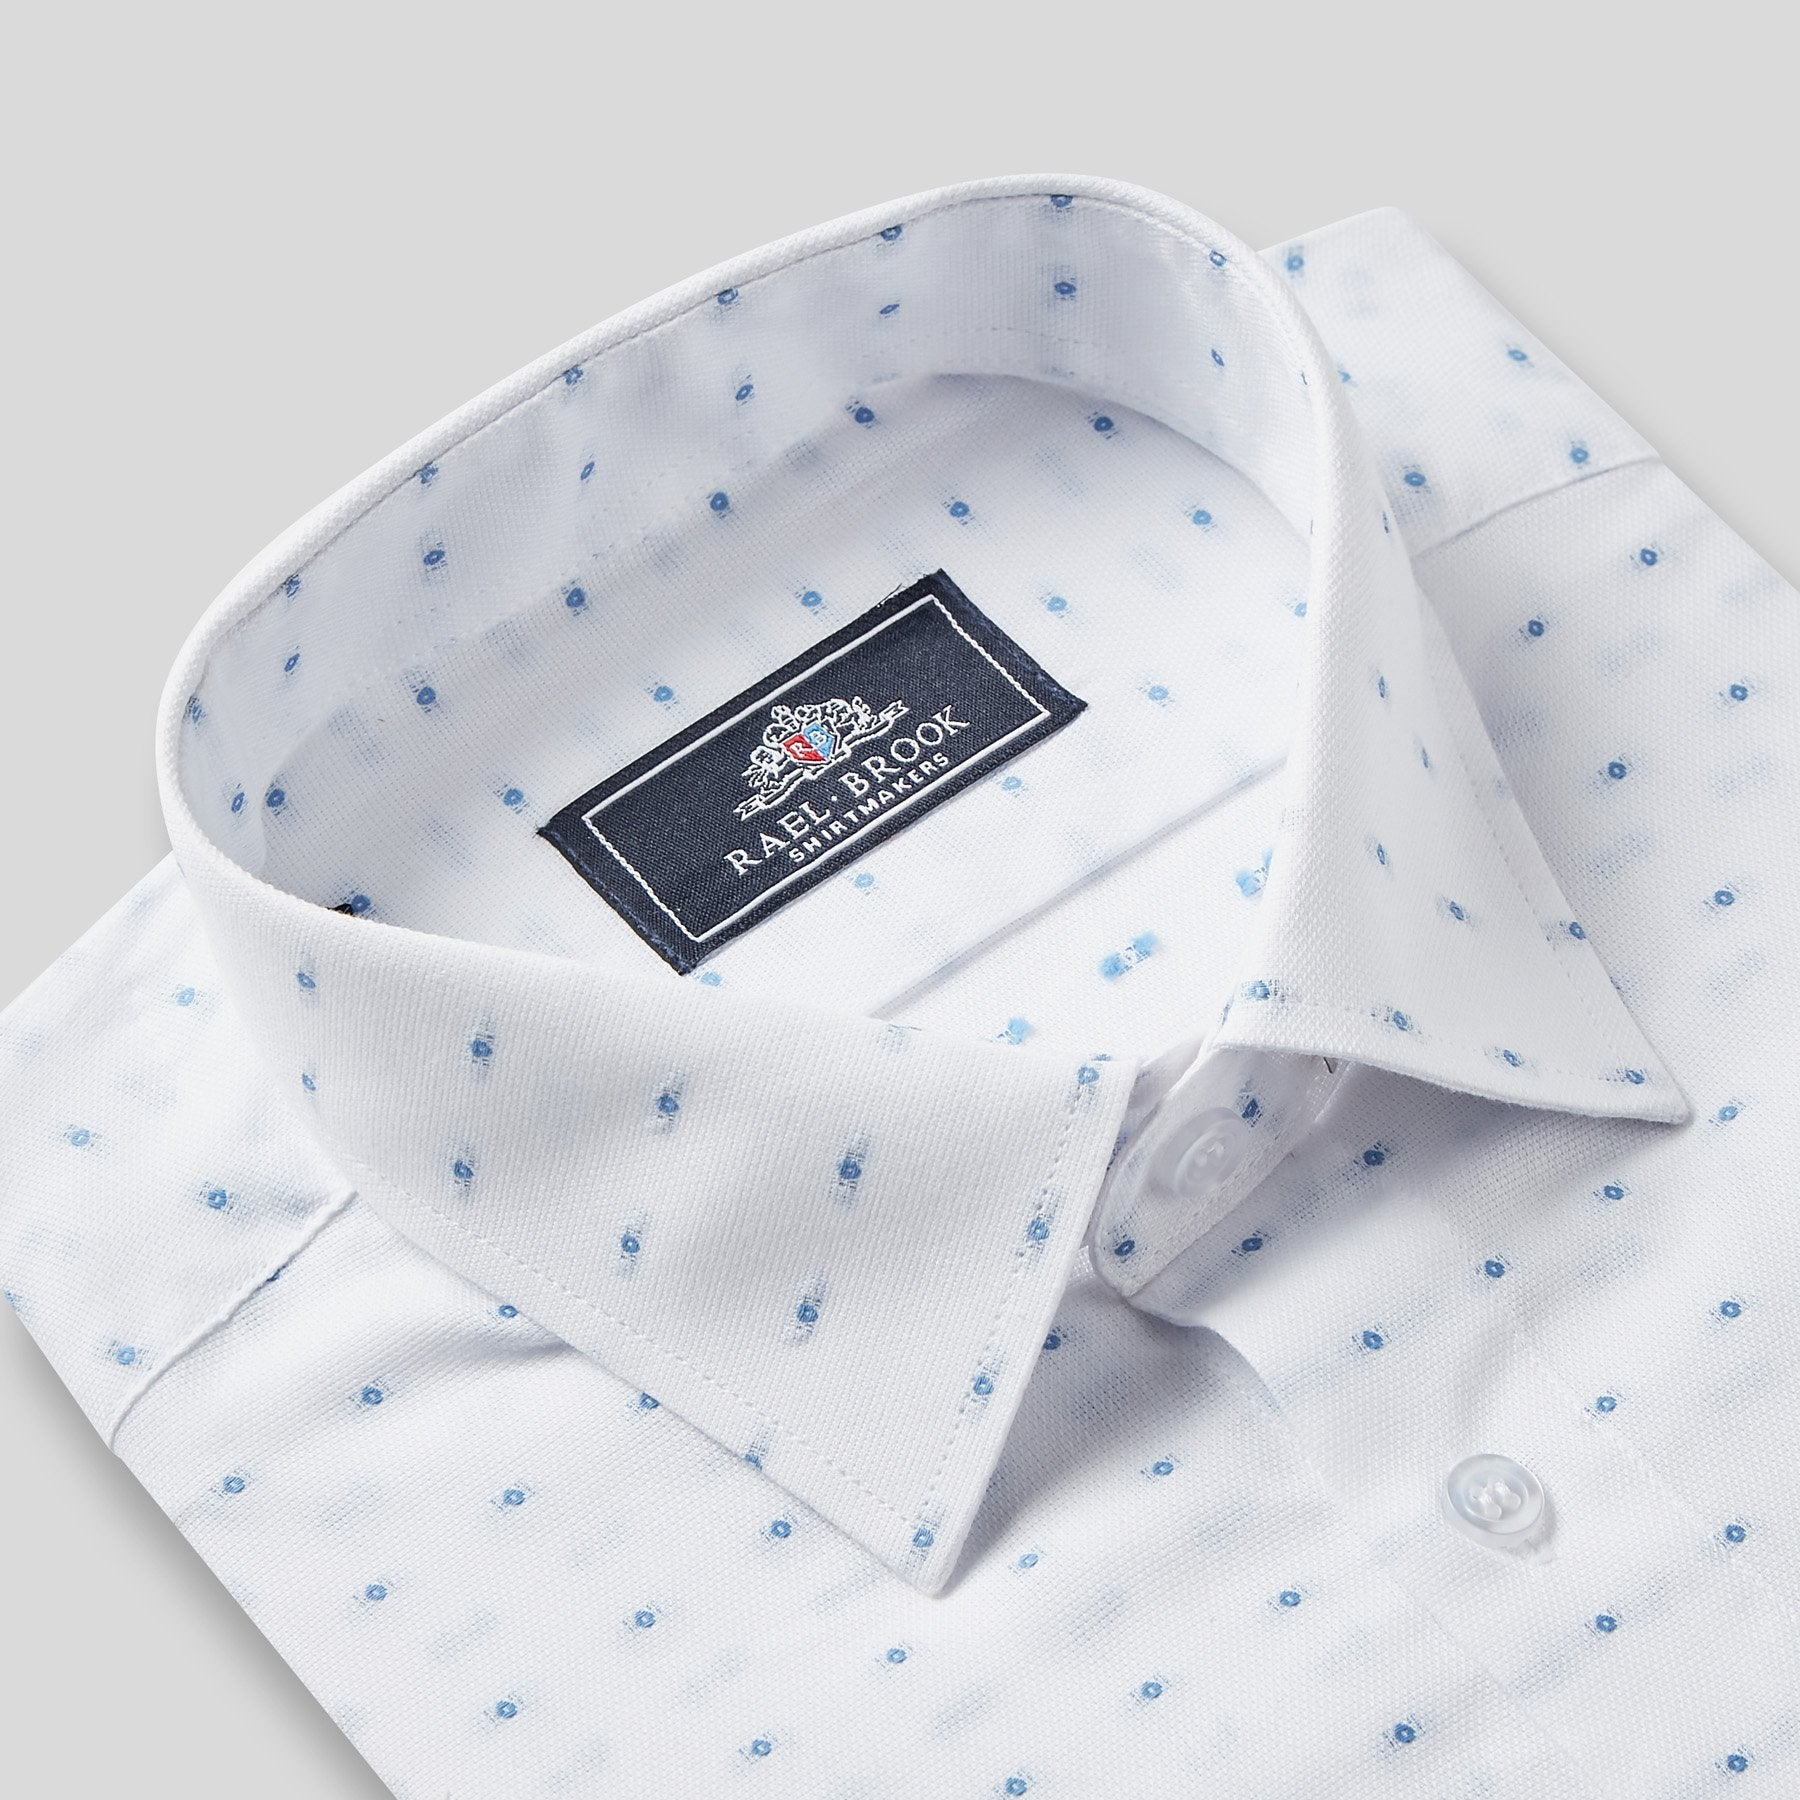 4791-Rael-Brook-Classic-Fit-White-Dobby-Weave-Check-Single-Cuff-Shirt-2